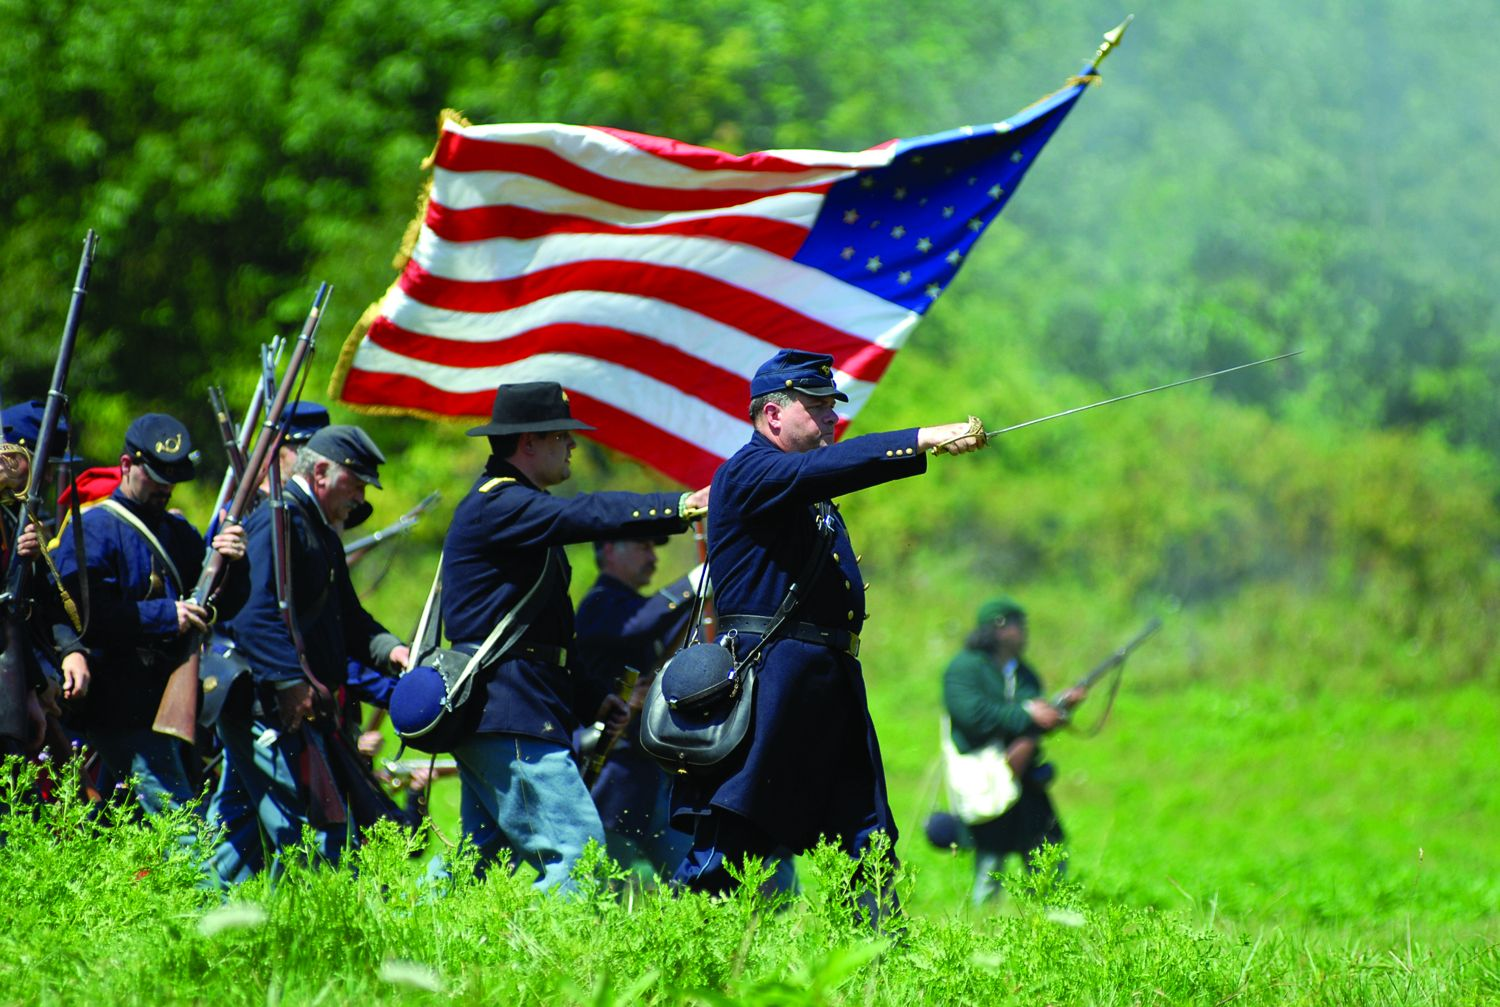 Hale Farm Civil War Reenactment - Hale Farm & Village Civil War Reenactment - Hale Farm and Village